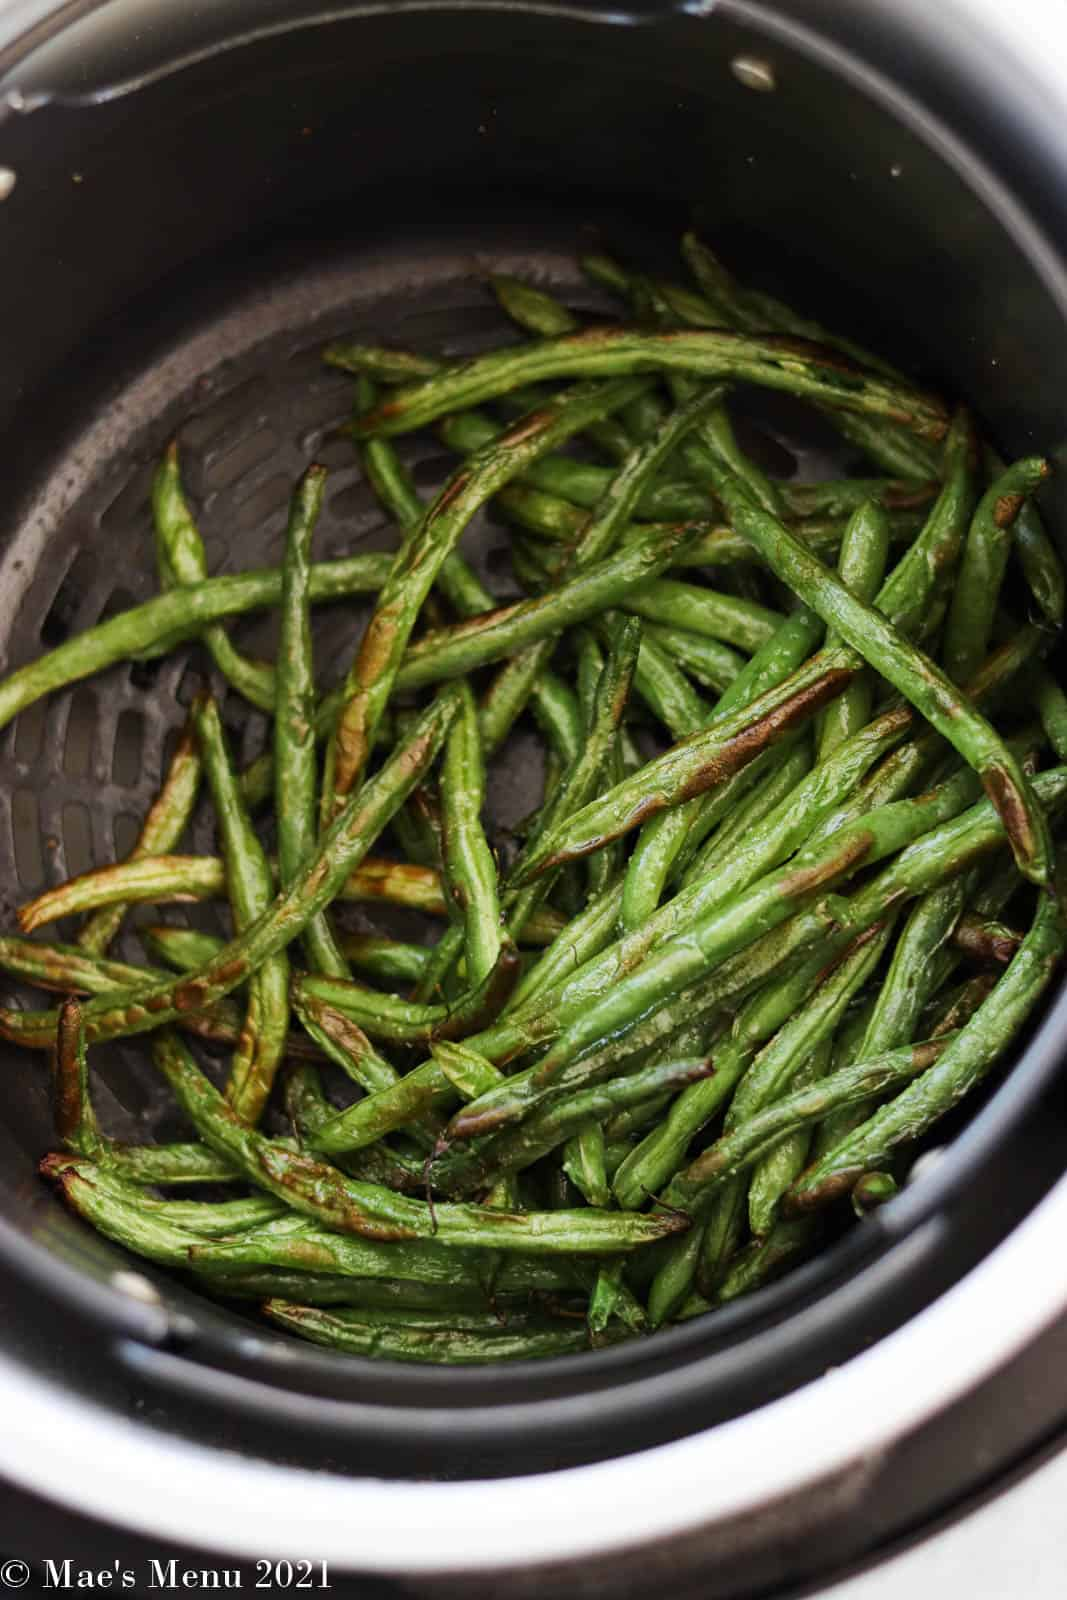 blistered Air fryer green beans in the basket of an air fryer